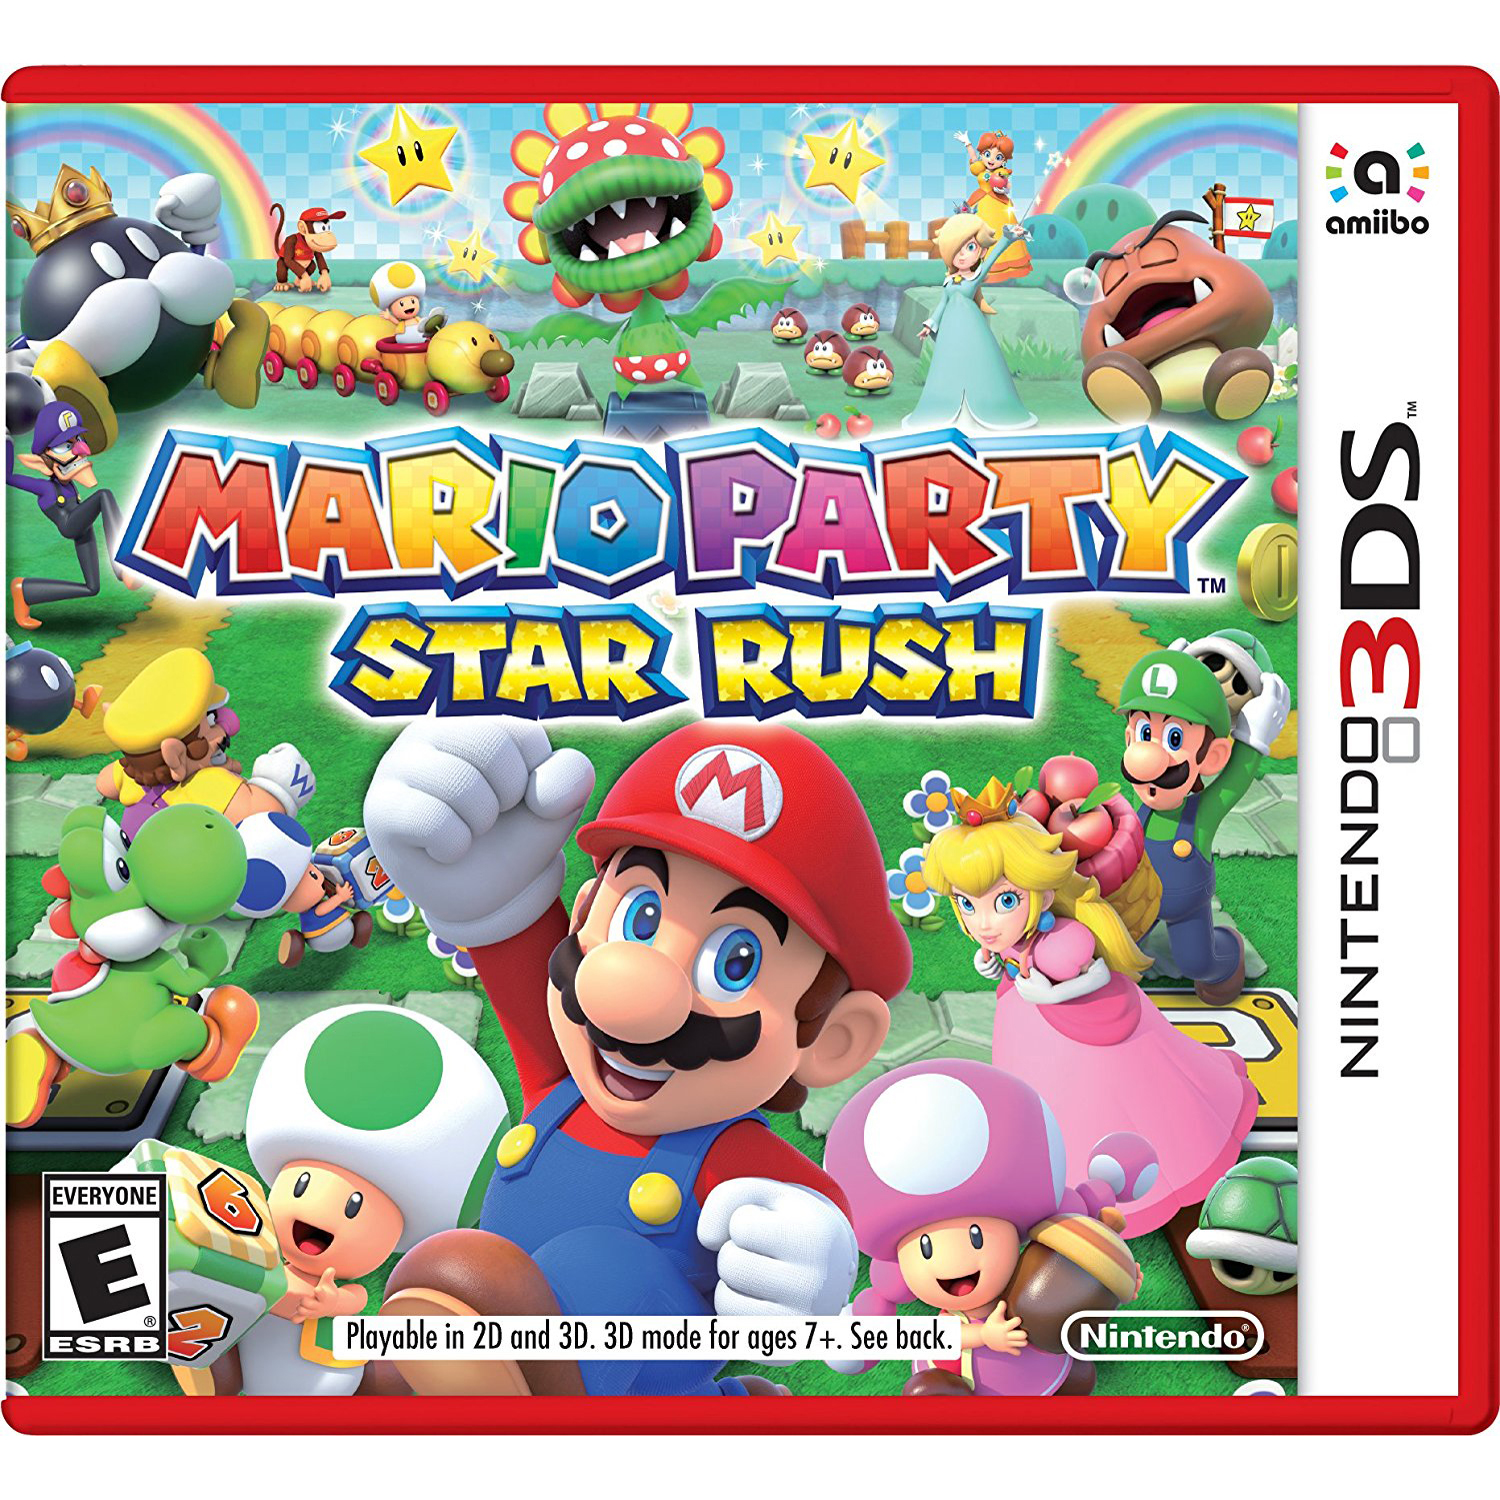 Mario Party: Star Rush, Nintendo, Nintendo 3DS, [Digital Download], 0004549668130